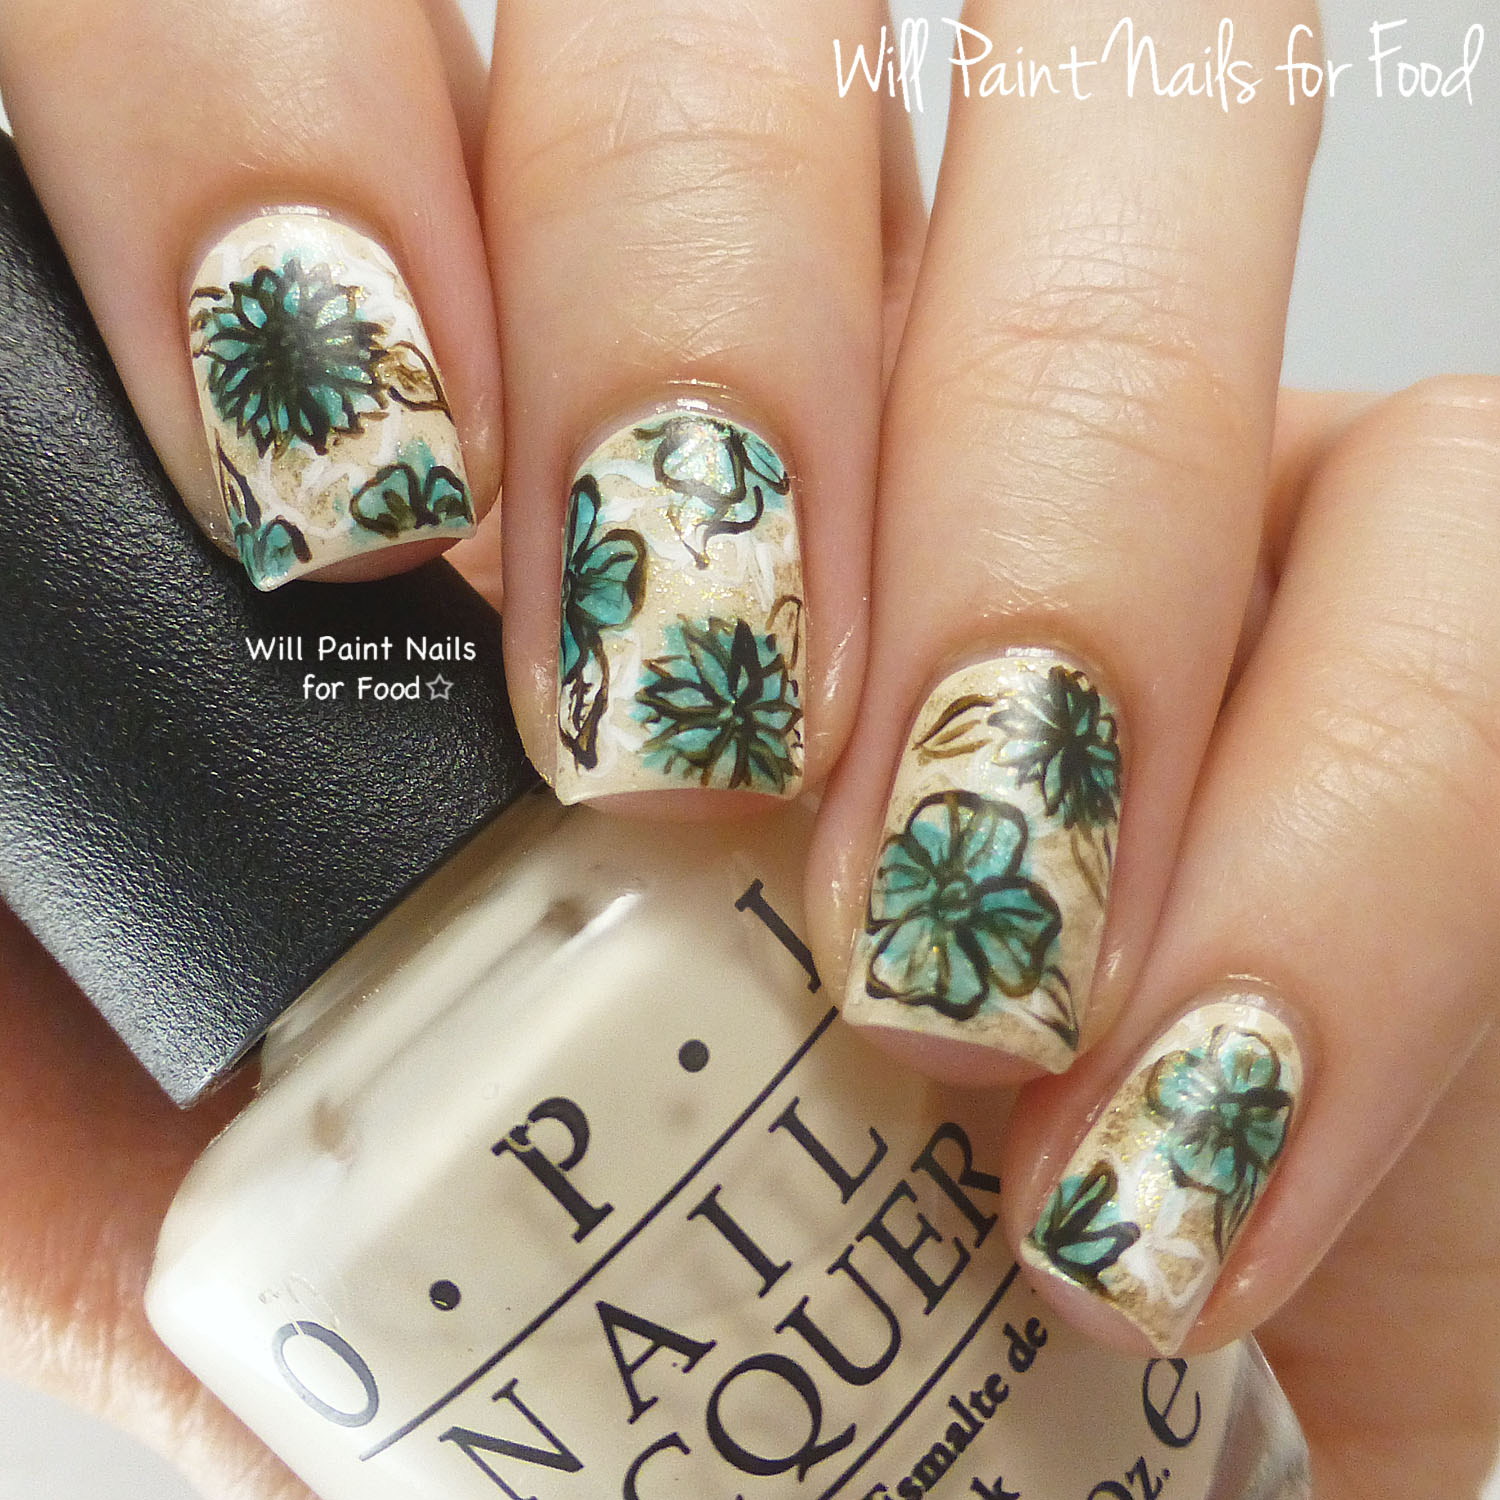 Vintage flower nail art gallery nail art and nail design ideas vintage flower nail art choice image nail art and nail design ideas vintage flower nail art prinsesfo Image collections